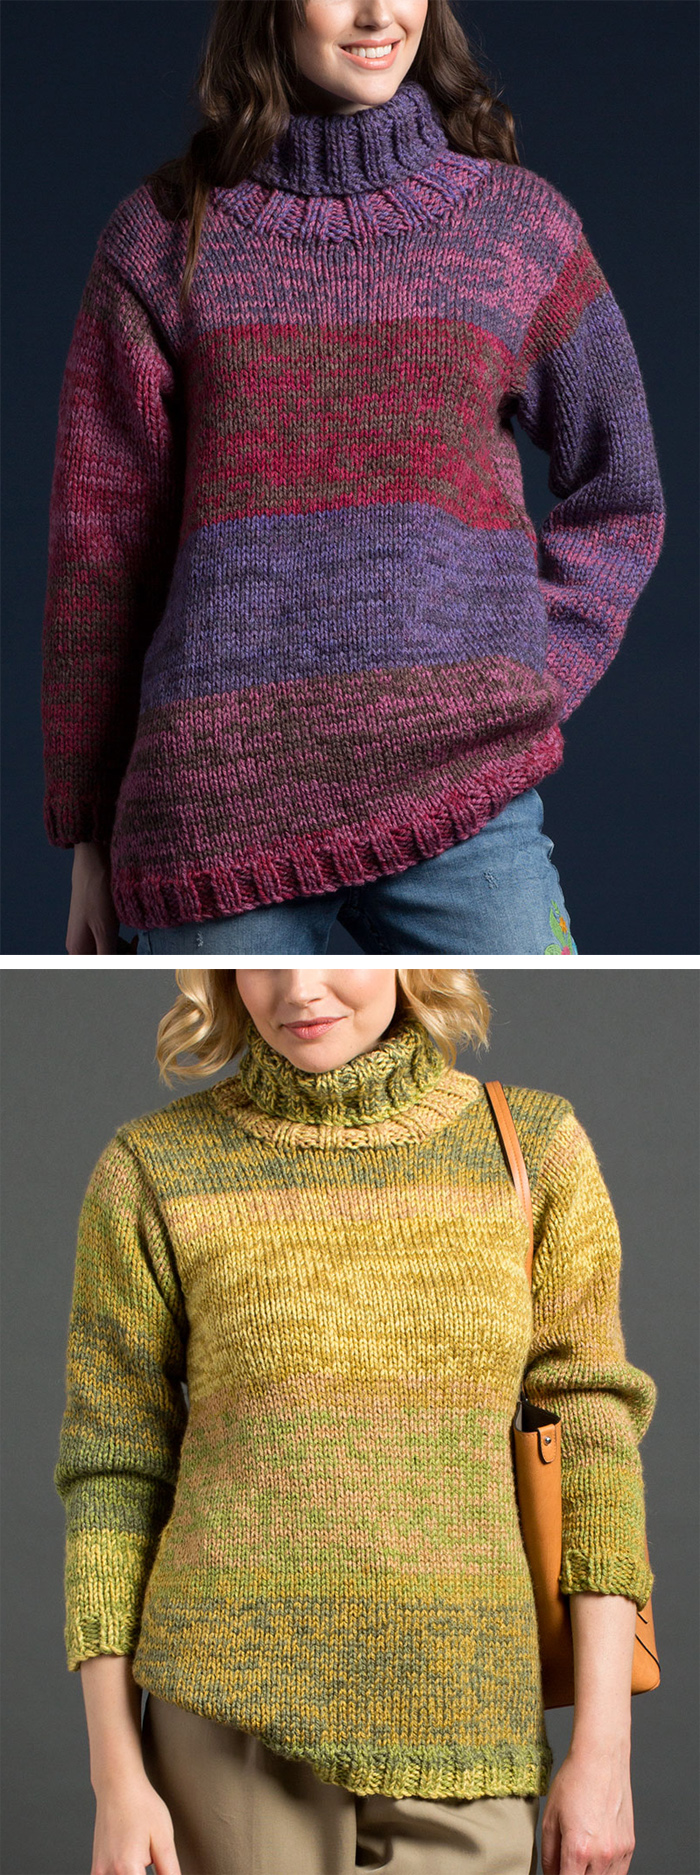 Easy Sweater Knitting Pattern Free Simple Decoration